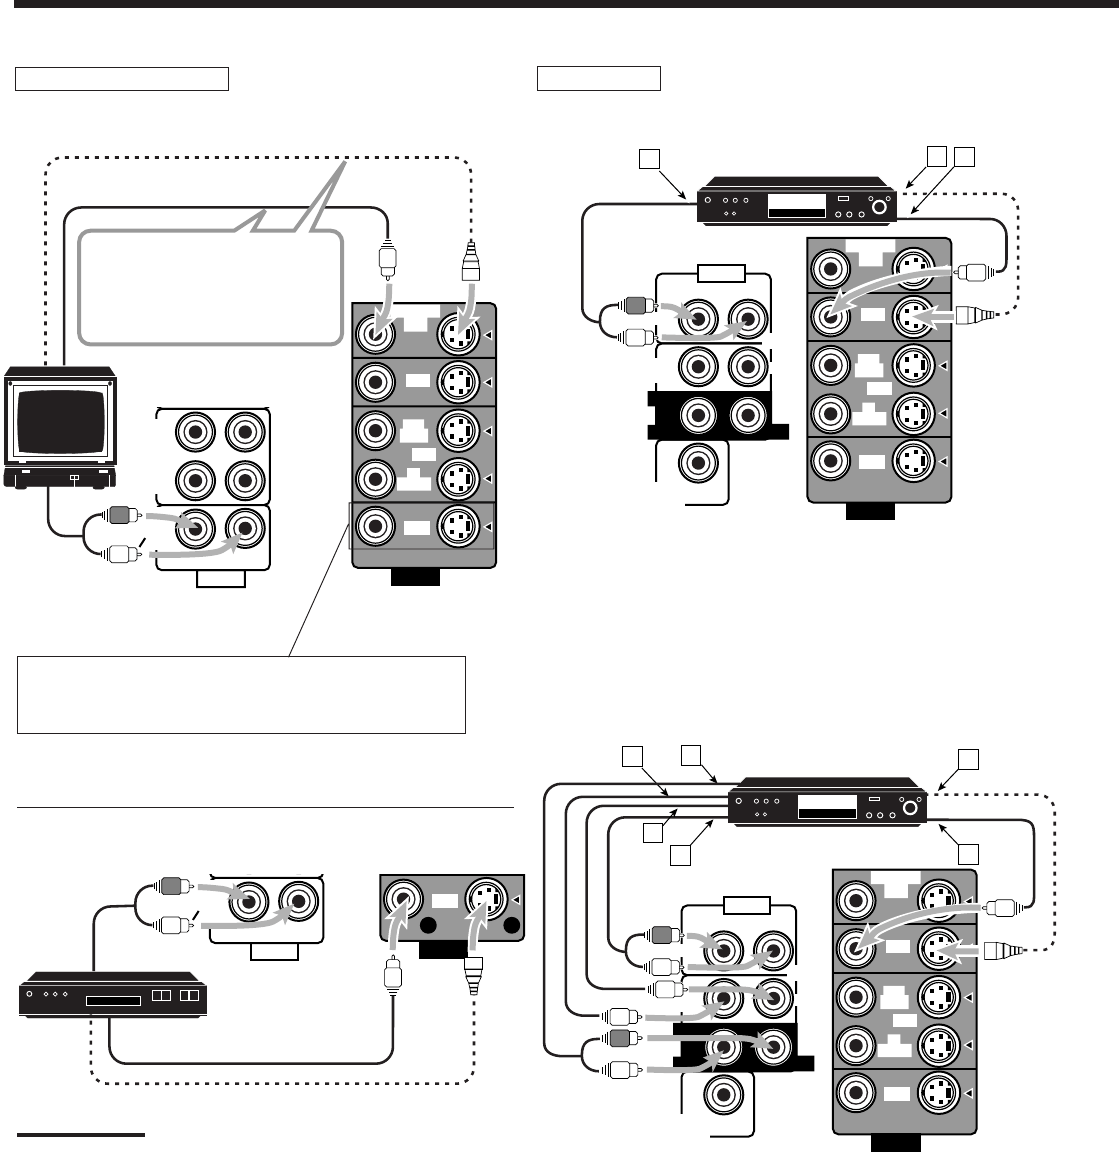 Page 10 of JVC Stereo Receiver RX-7010RBK User Guide